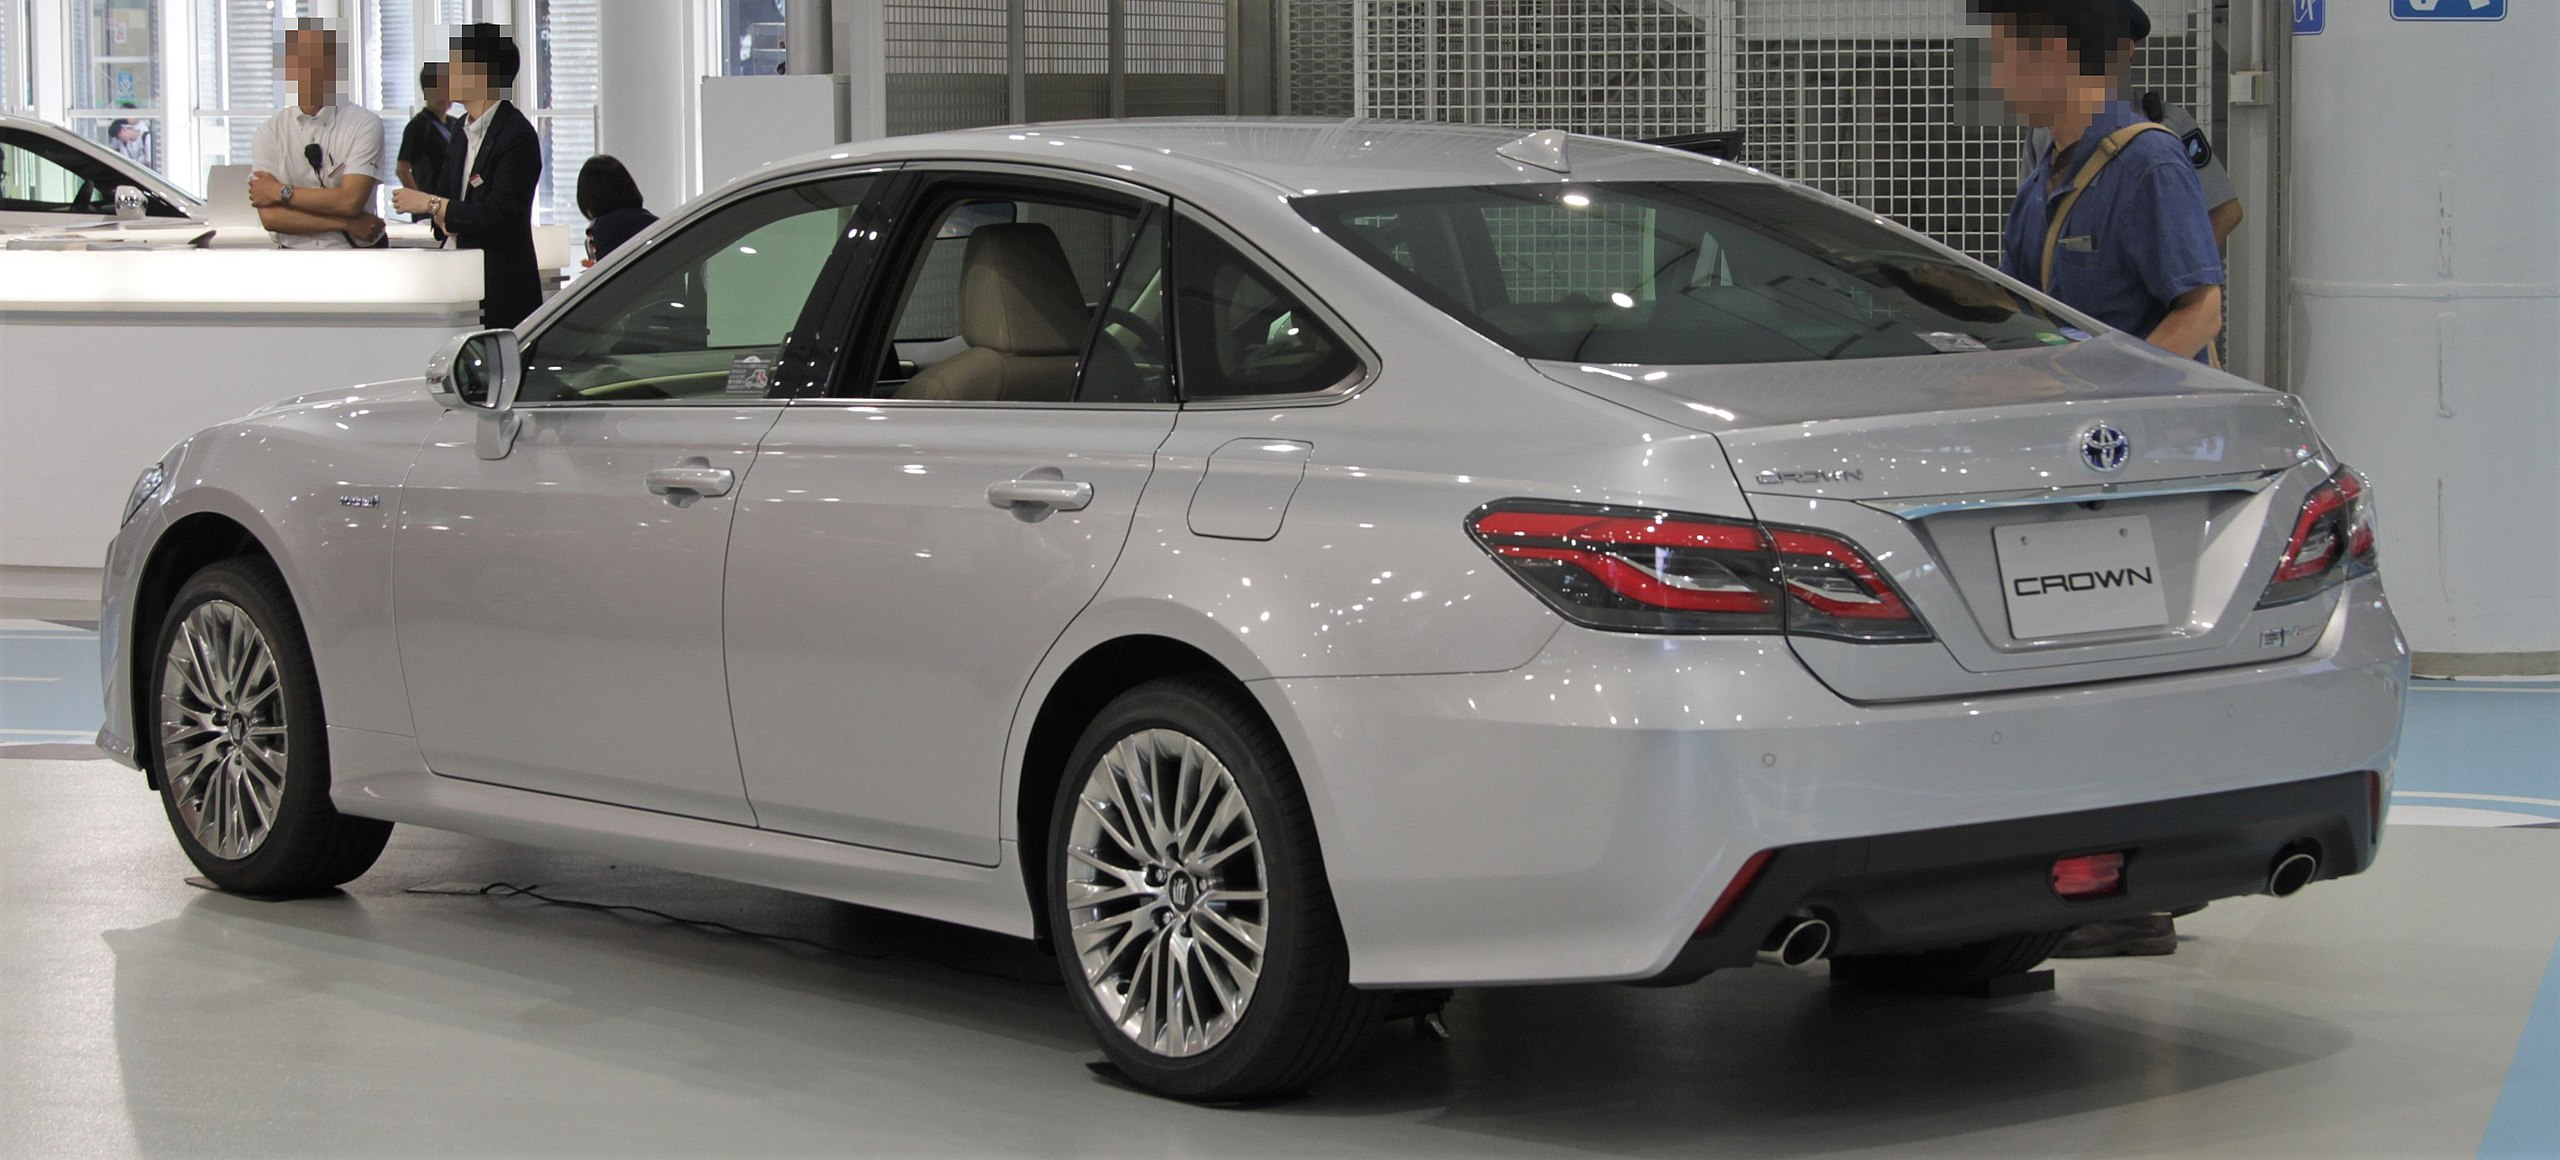 2018 Toyota Crown Hybrid rear.jpg